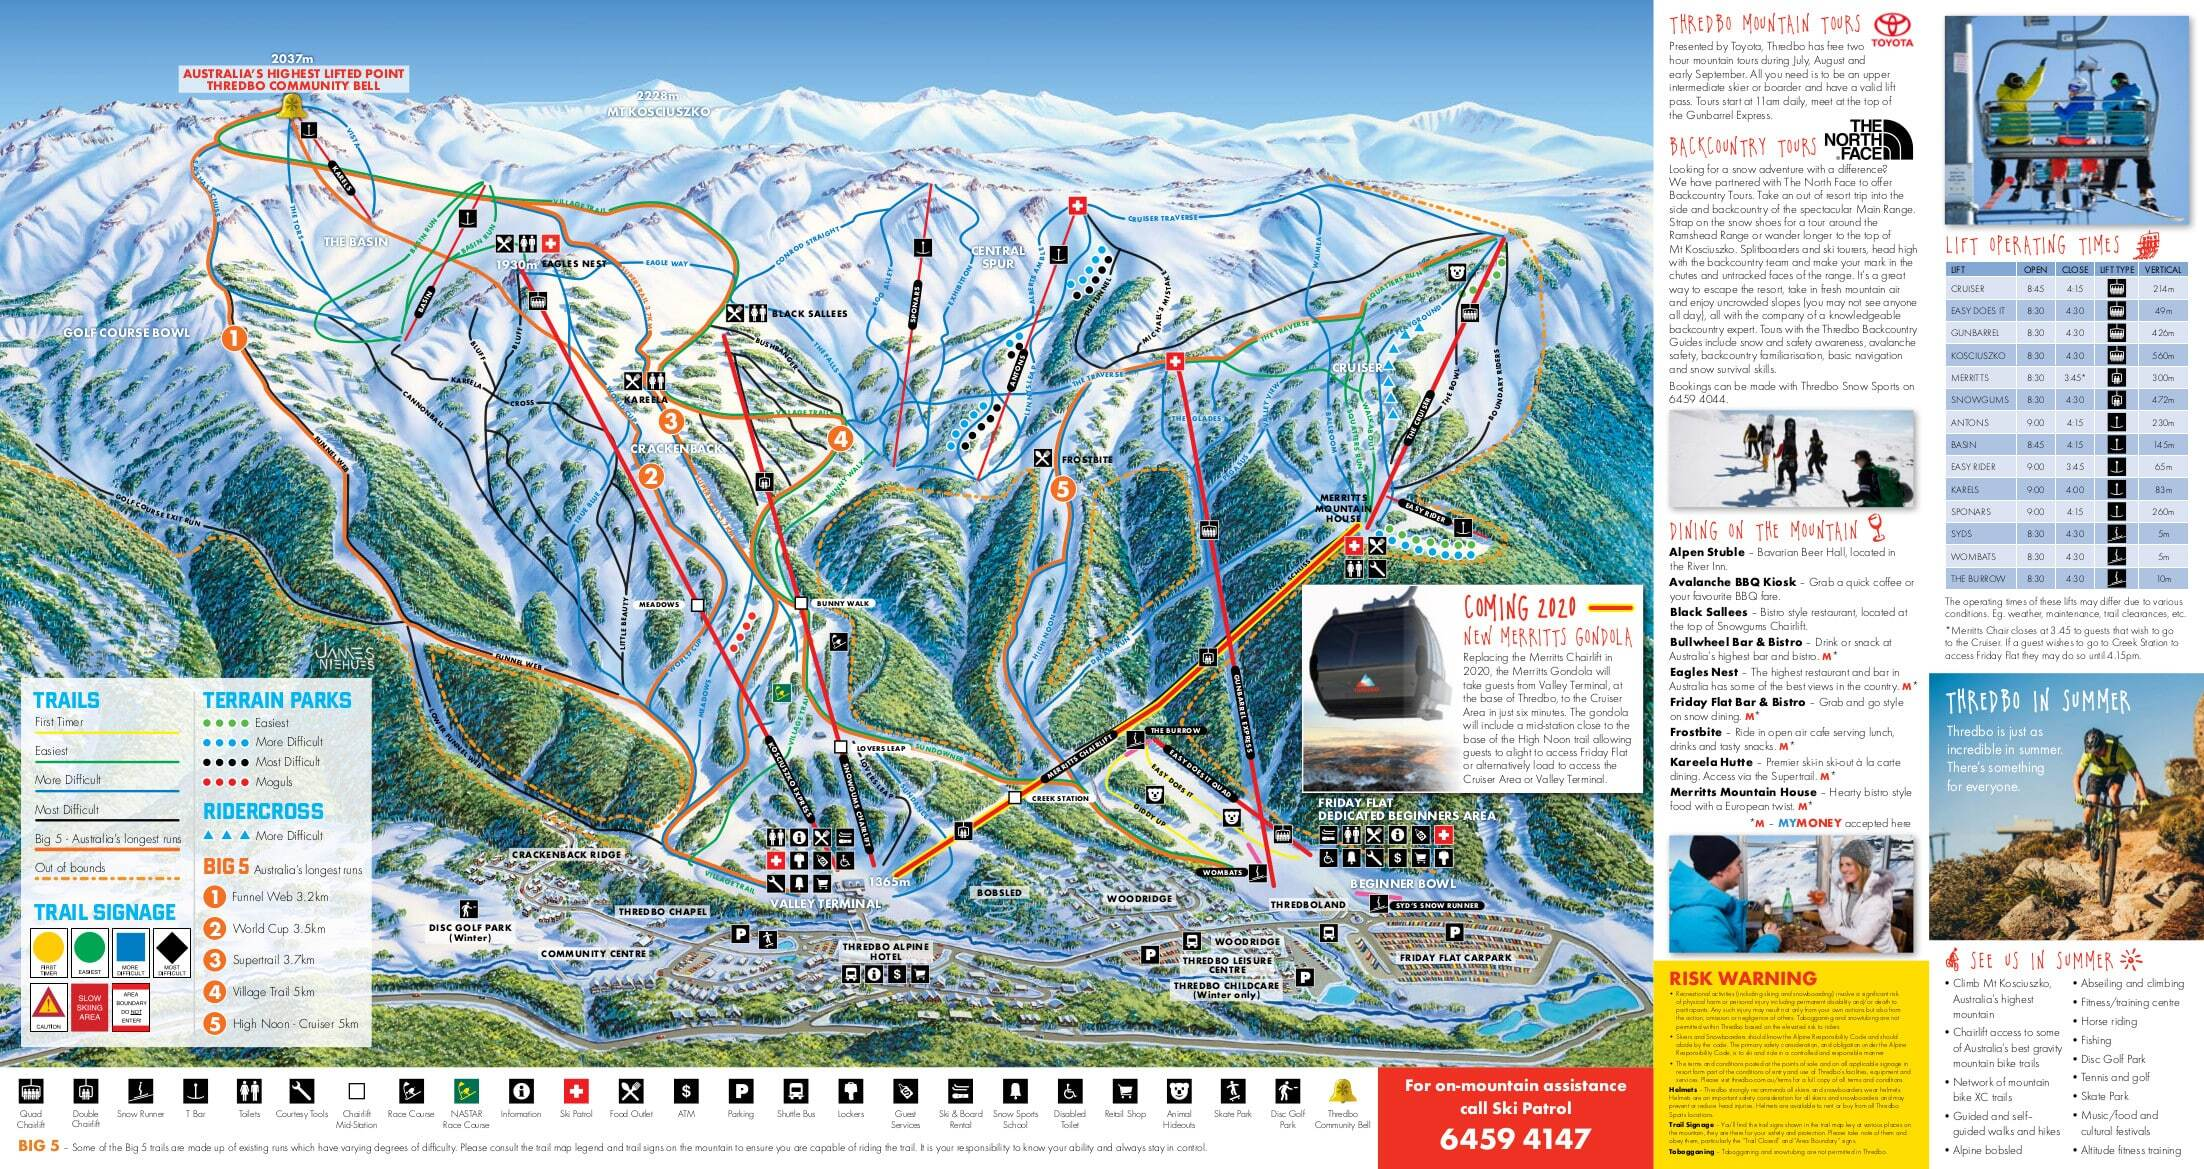 Thredbo Ski Resort Guide Location Map Thredbo Ski Holiday